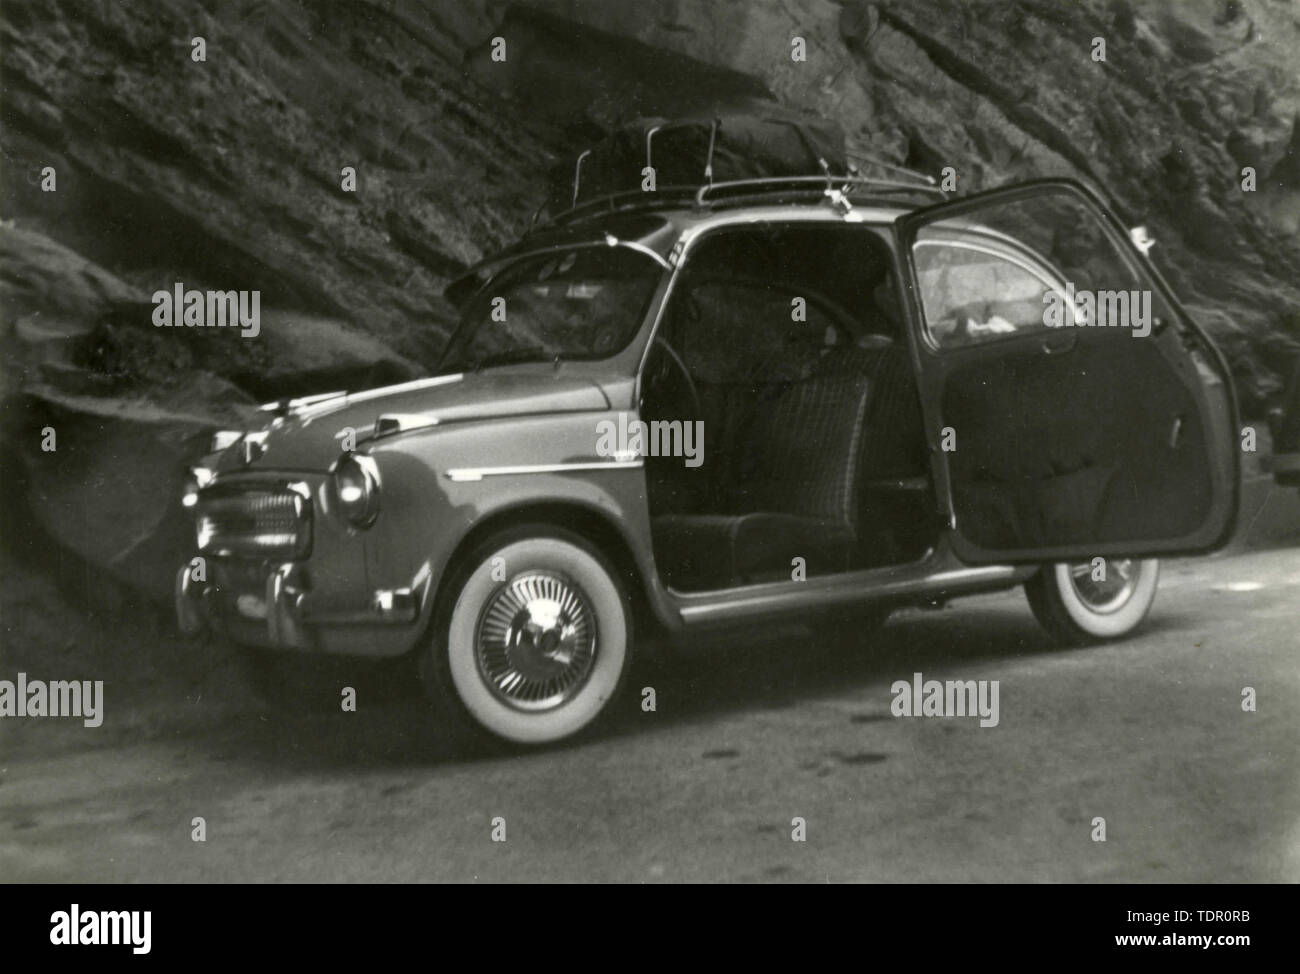 FIAT 600 car windward doors, Italy 1960s - Stock Image